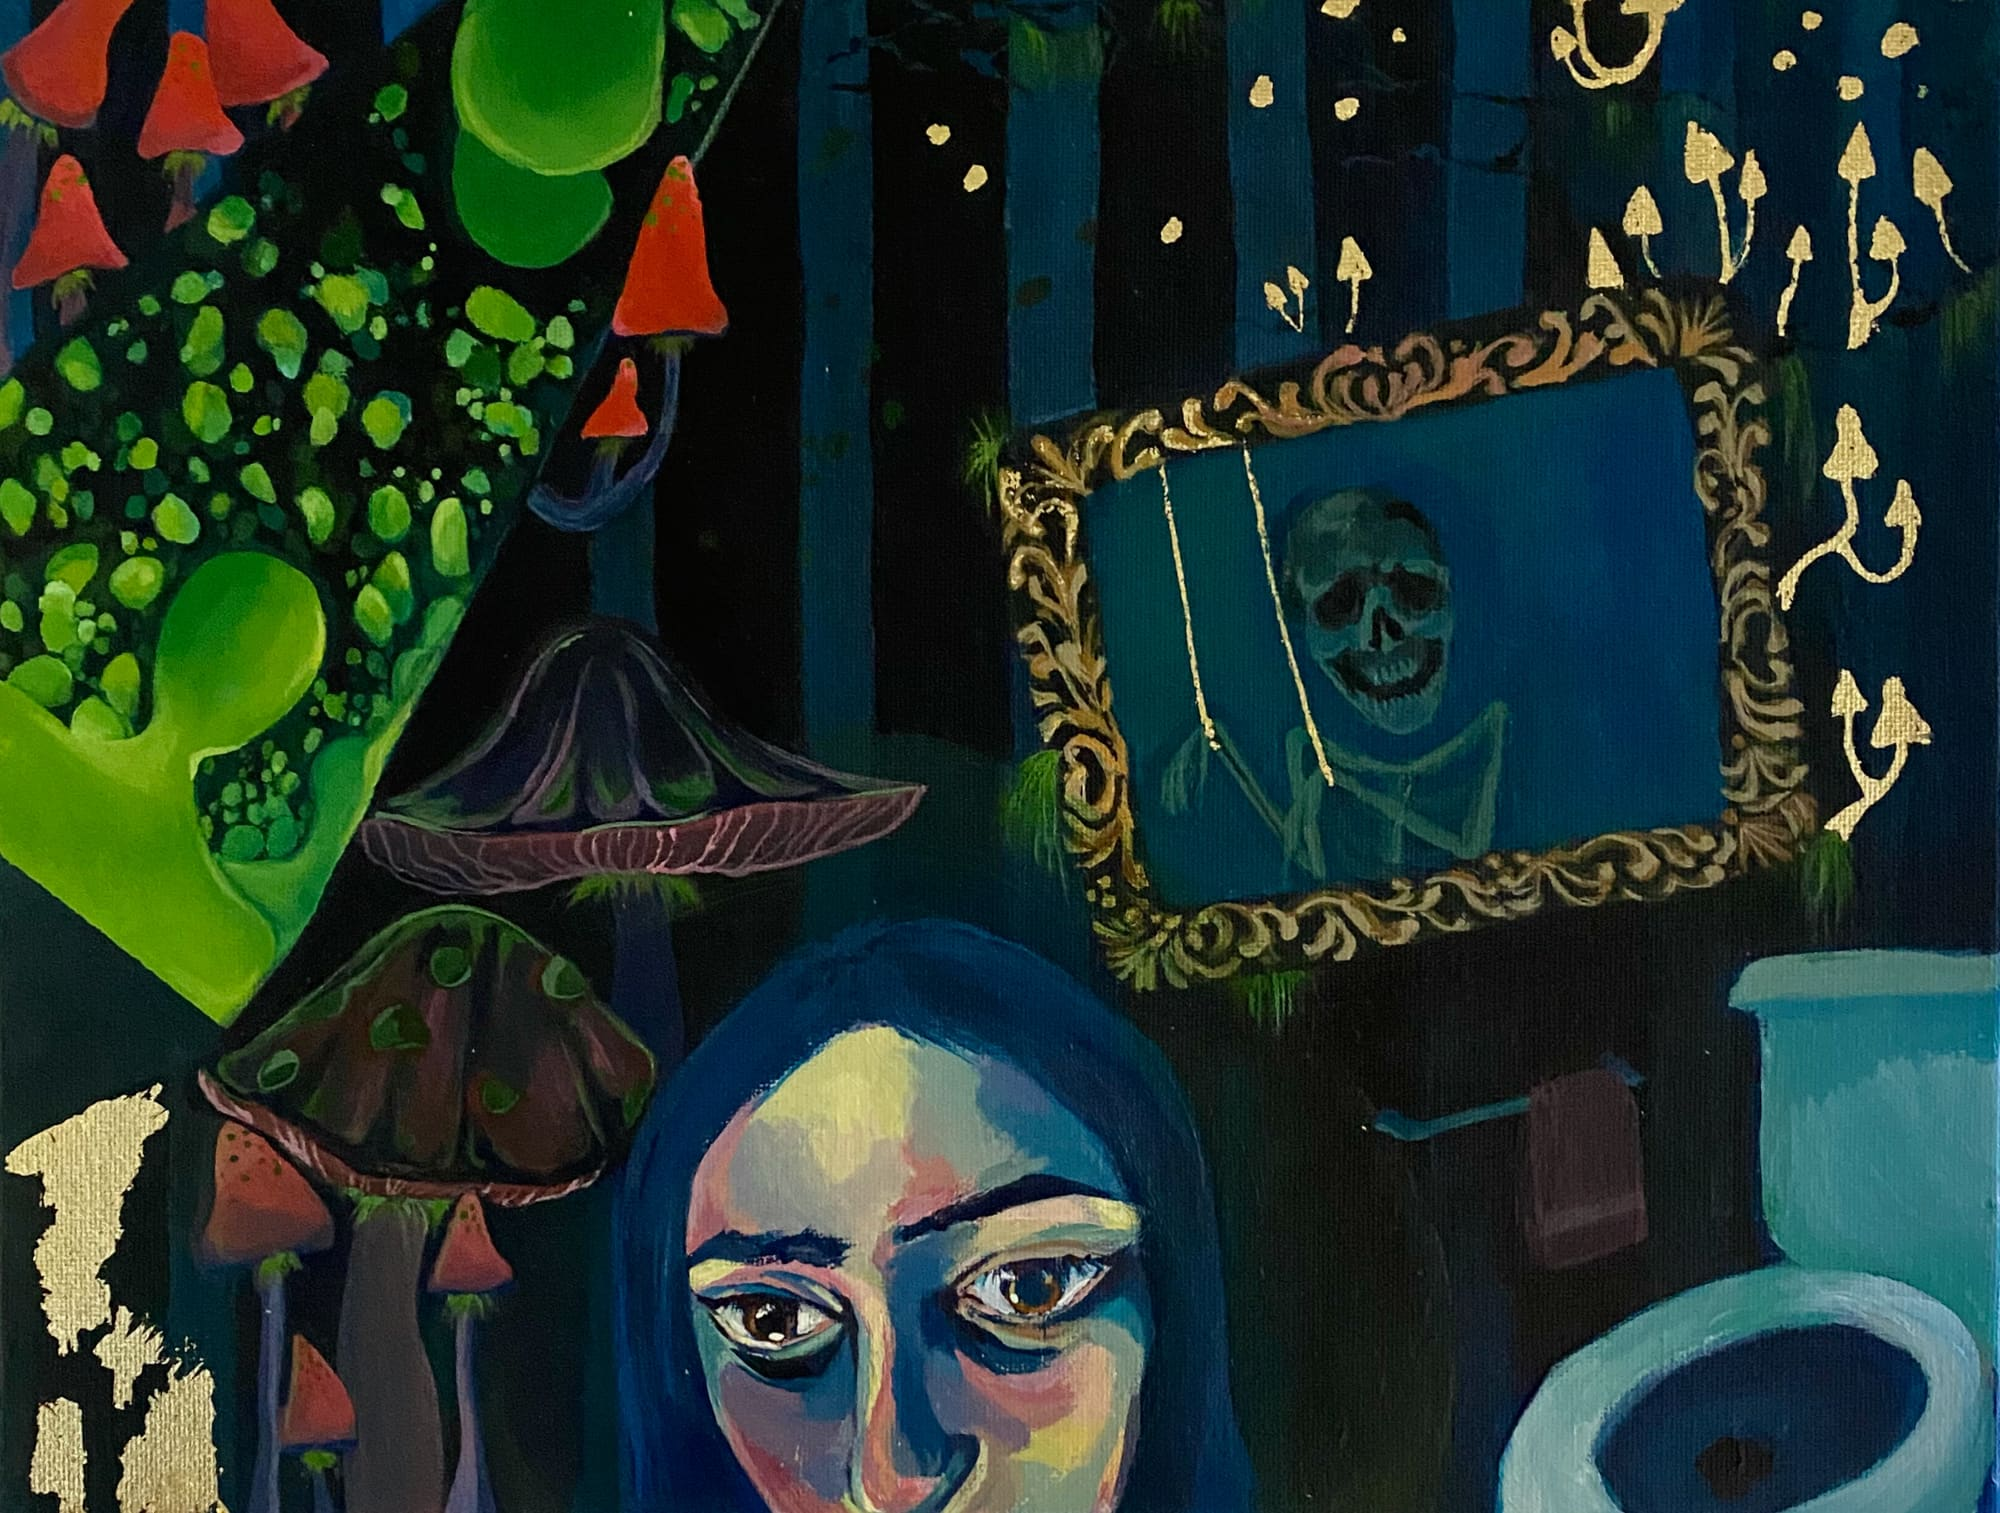 A painting of person in a bathroom and forest, a work by Chayna Yoshida